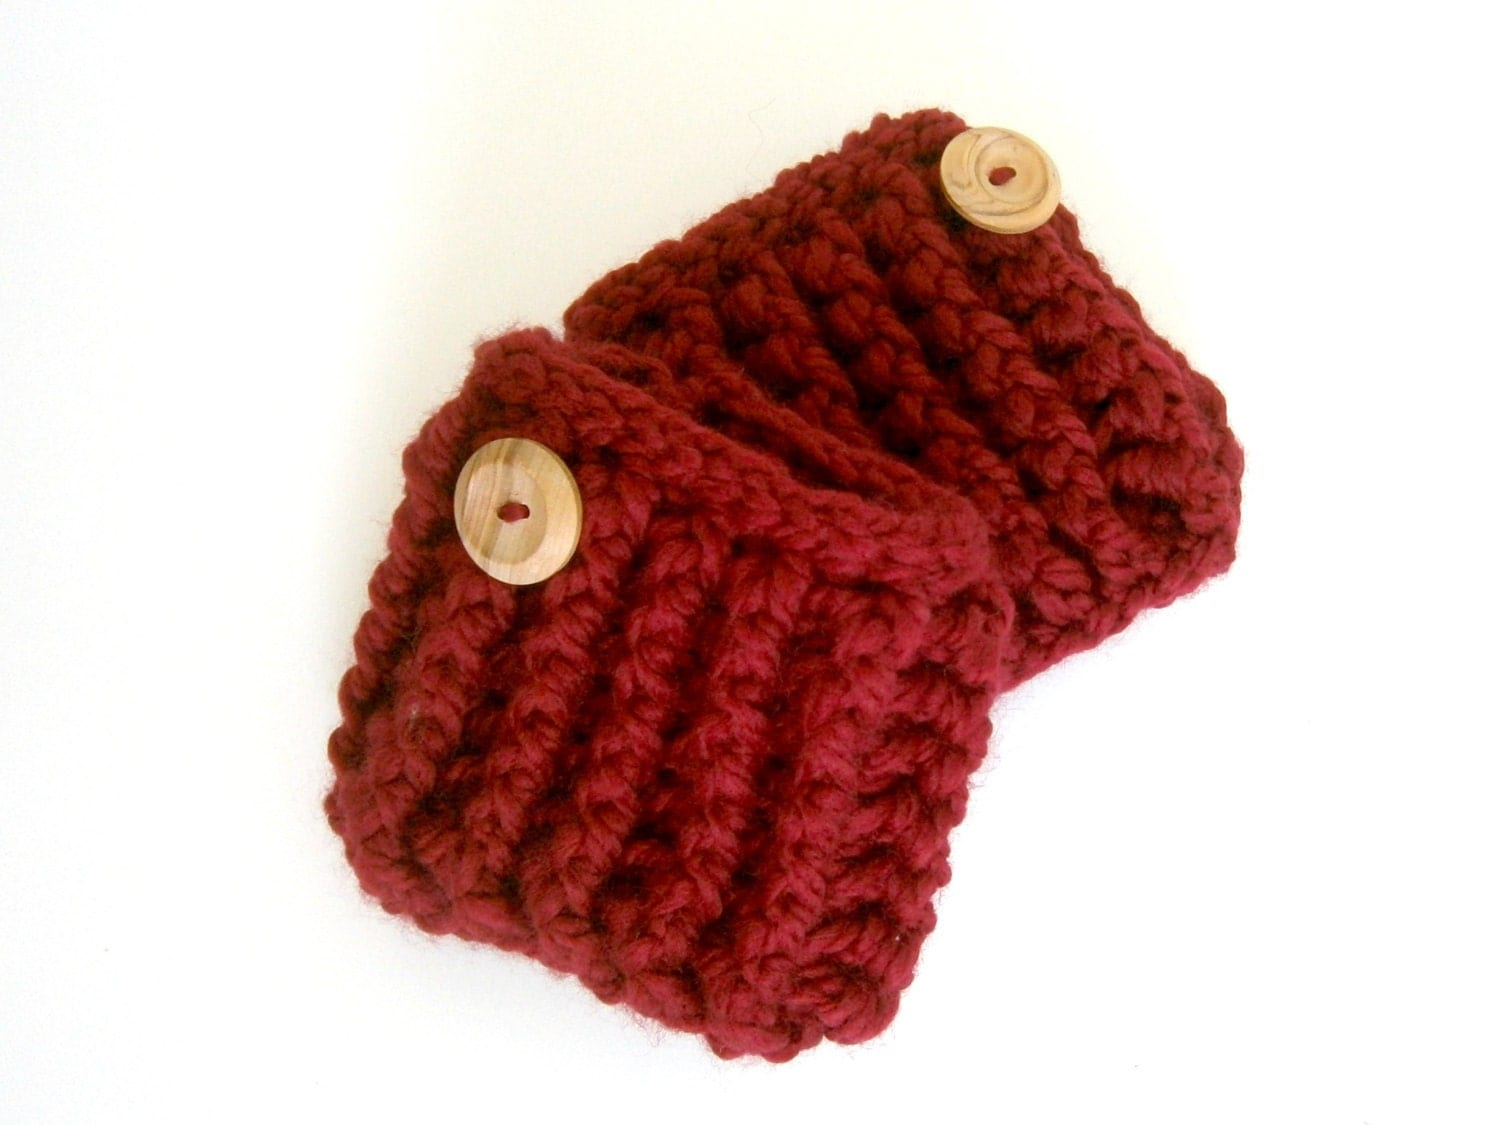 Beginner Crochet Boot Cuff Pattern : CROCHET PATTERN Crochet Boot Cuffs Crochet by ...